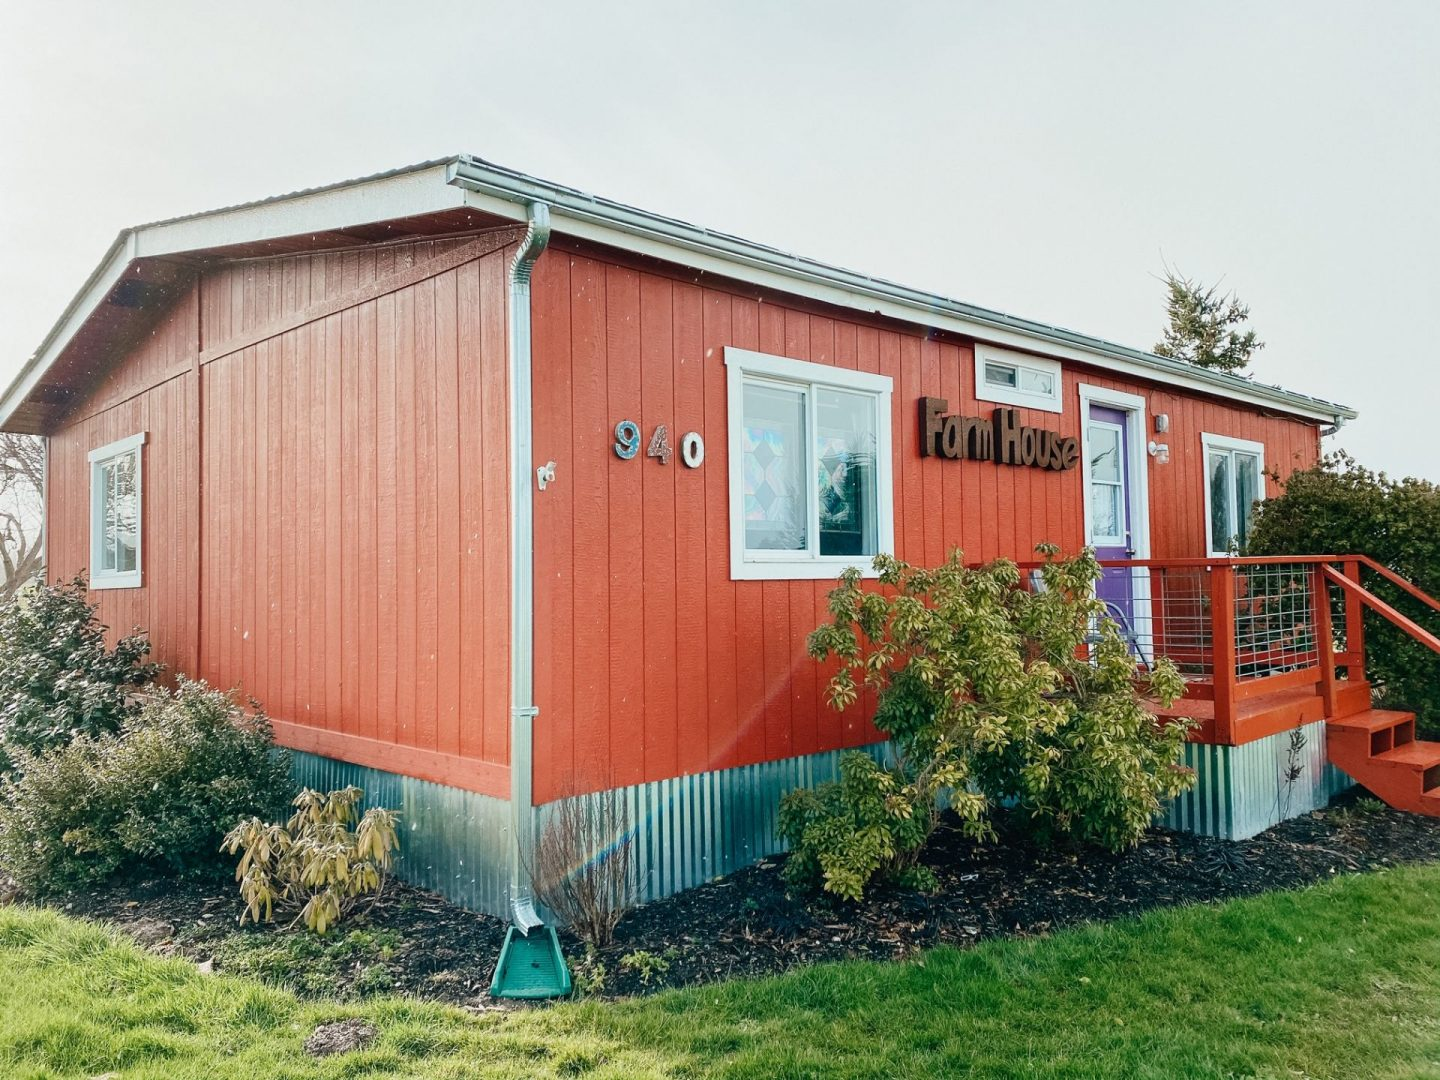 our quick airbnb stay in port angeles